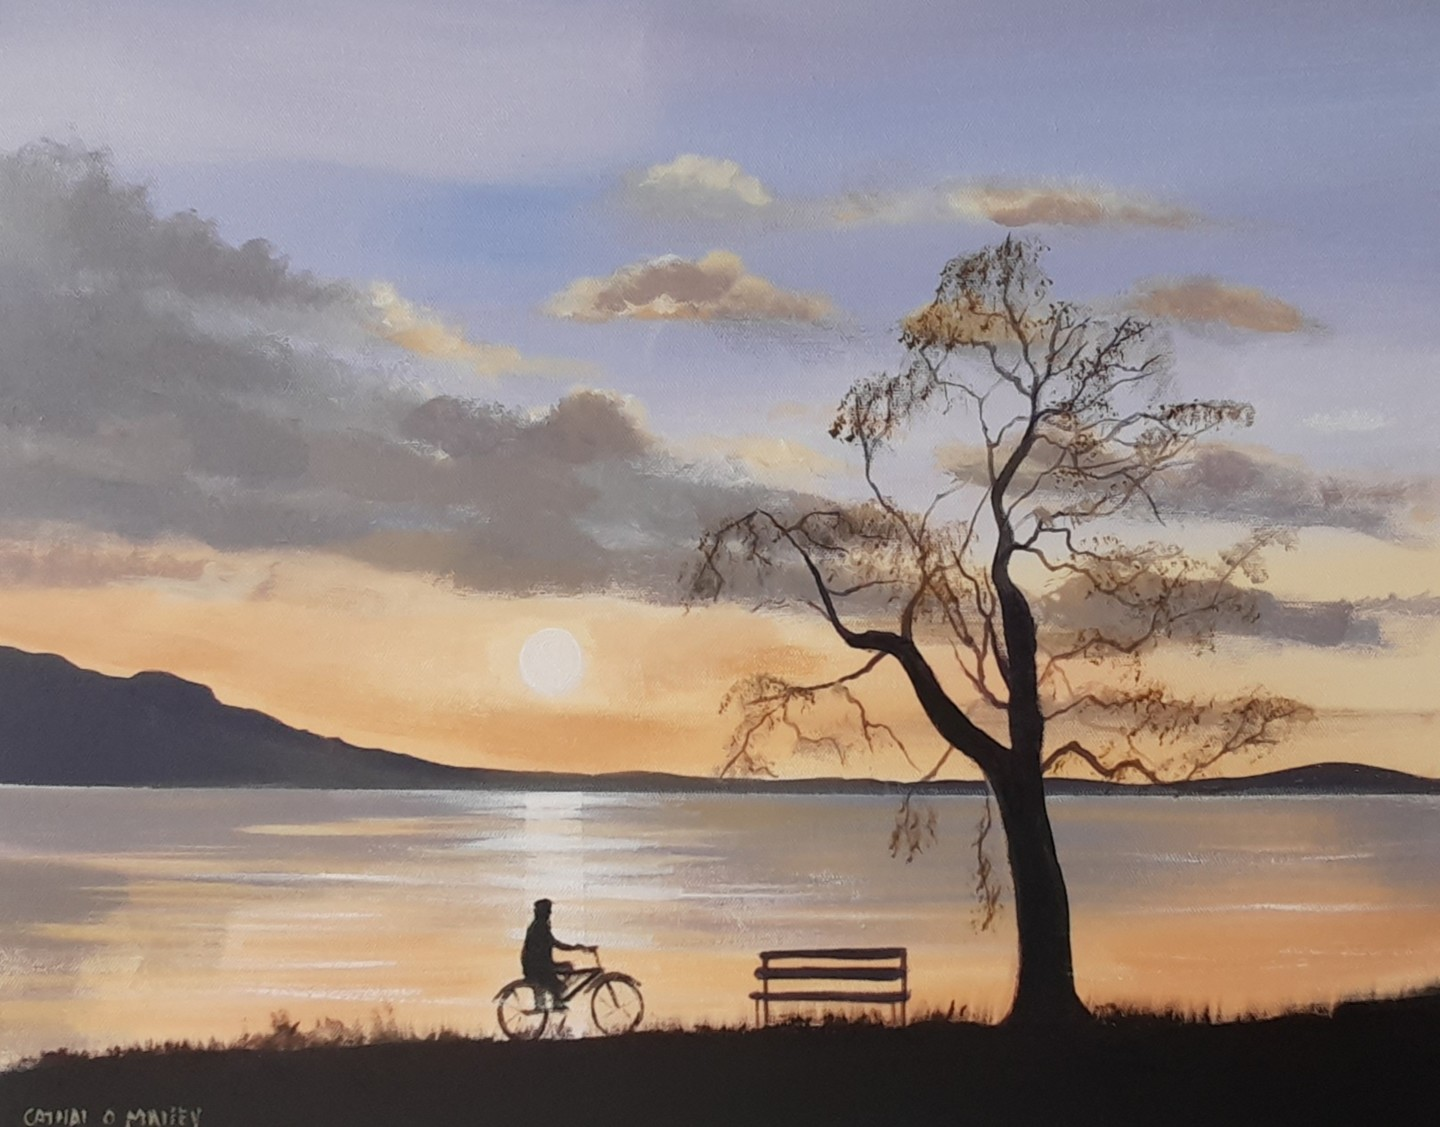 Cathal O Malley - Evening cycle